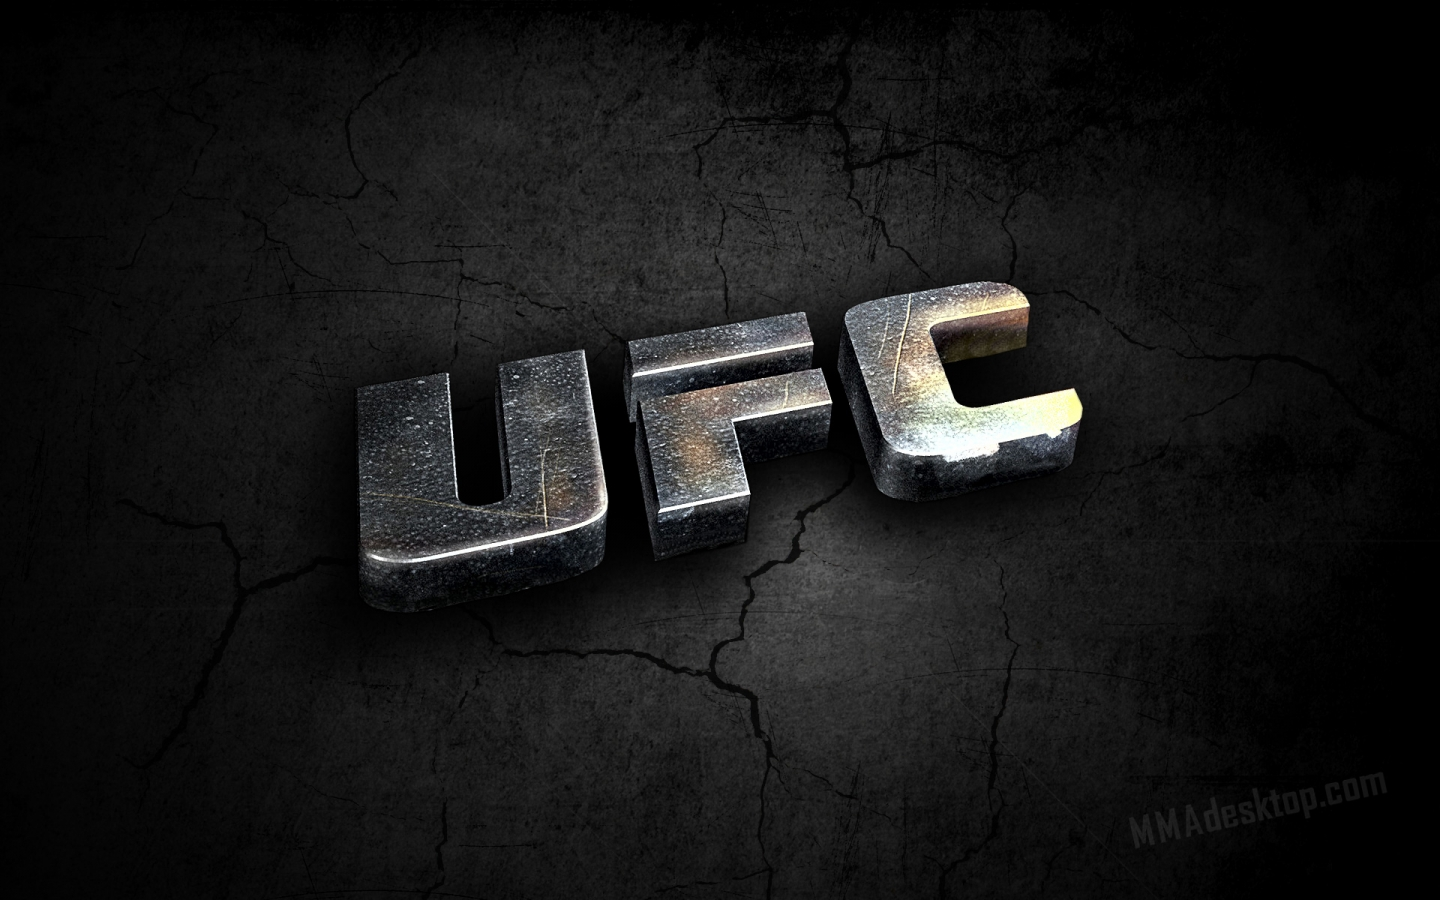 File Ufc Wallpapers 152TA9Ejpg   4USkY 1440x900